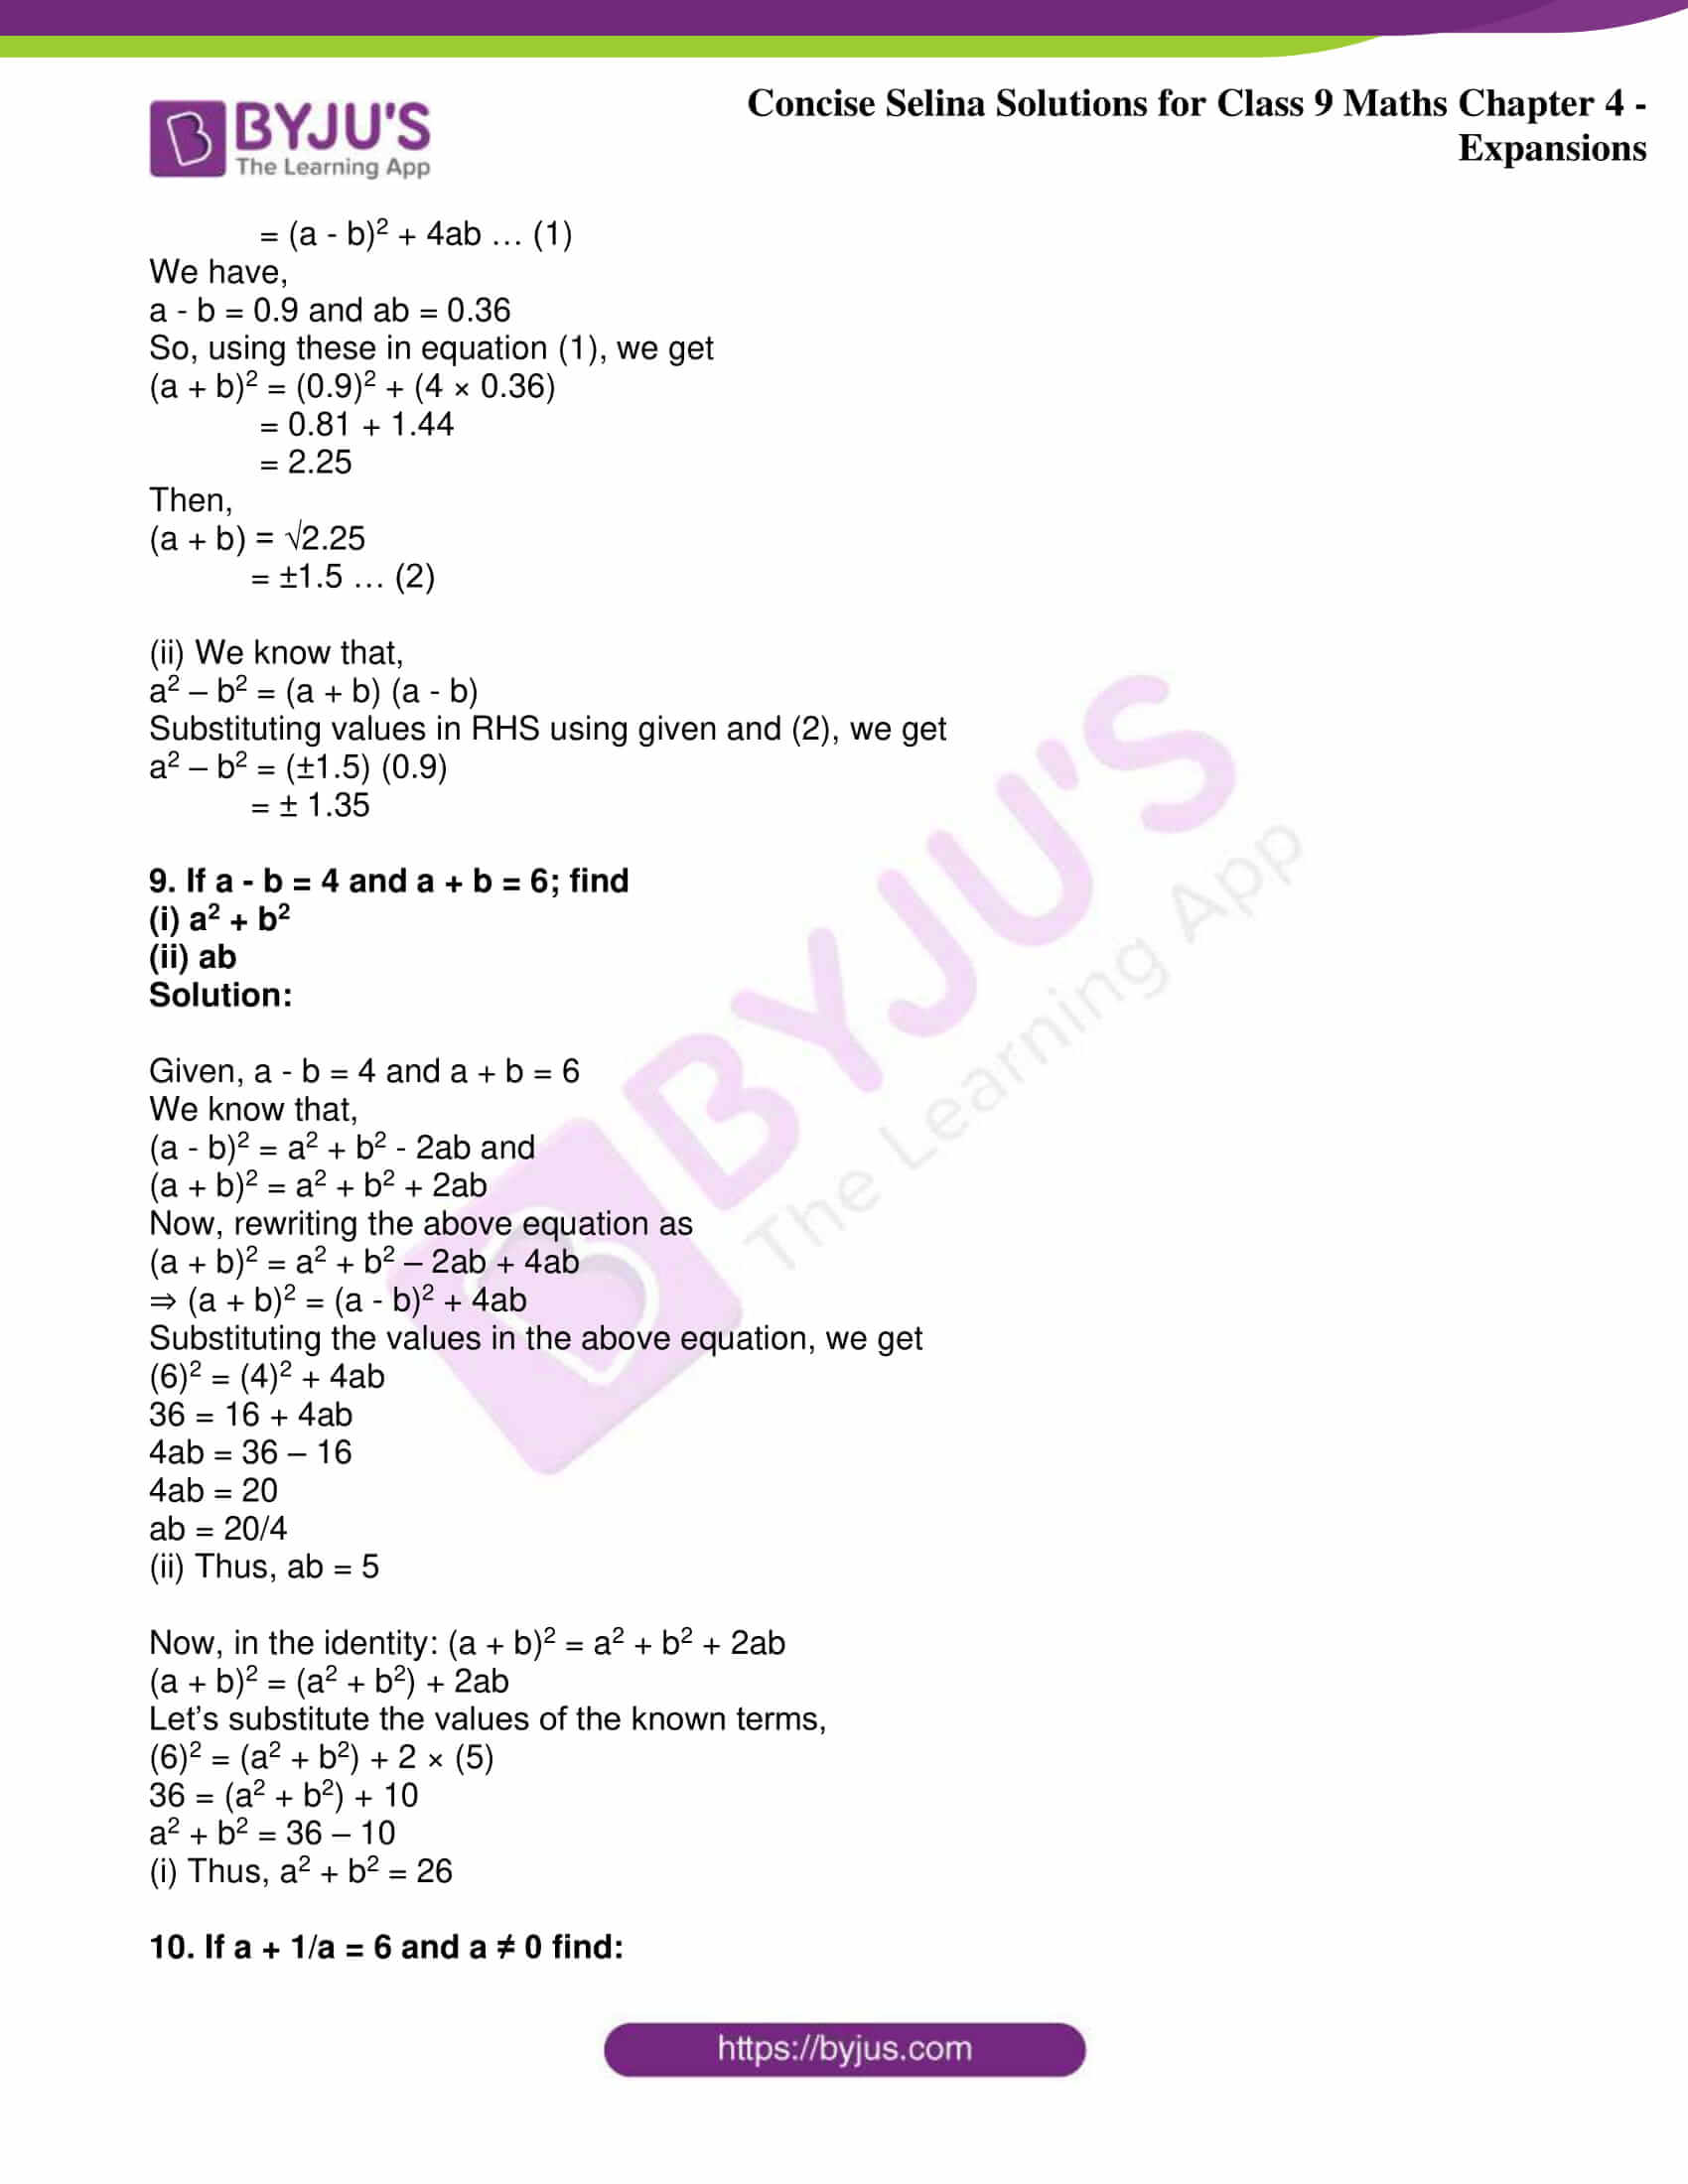 icse class 9 maths may10 selina solutions chapter 4 expansions 05